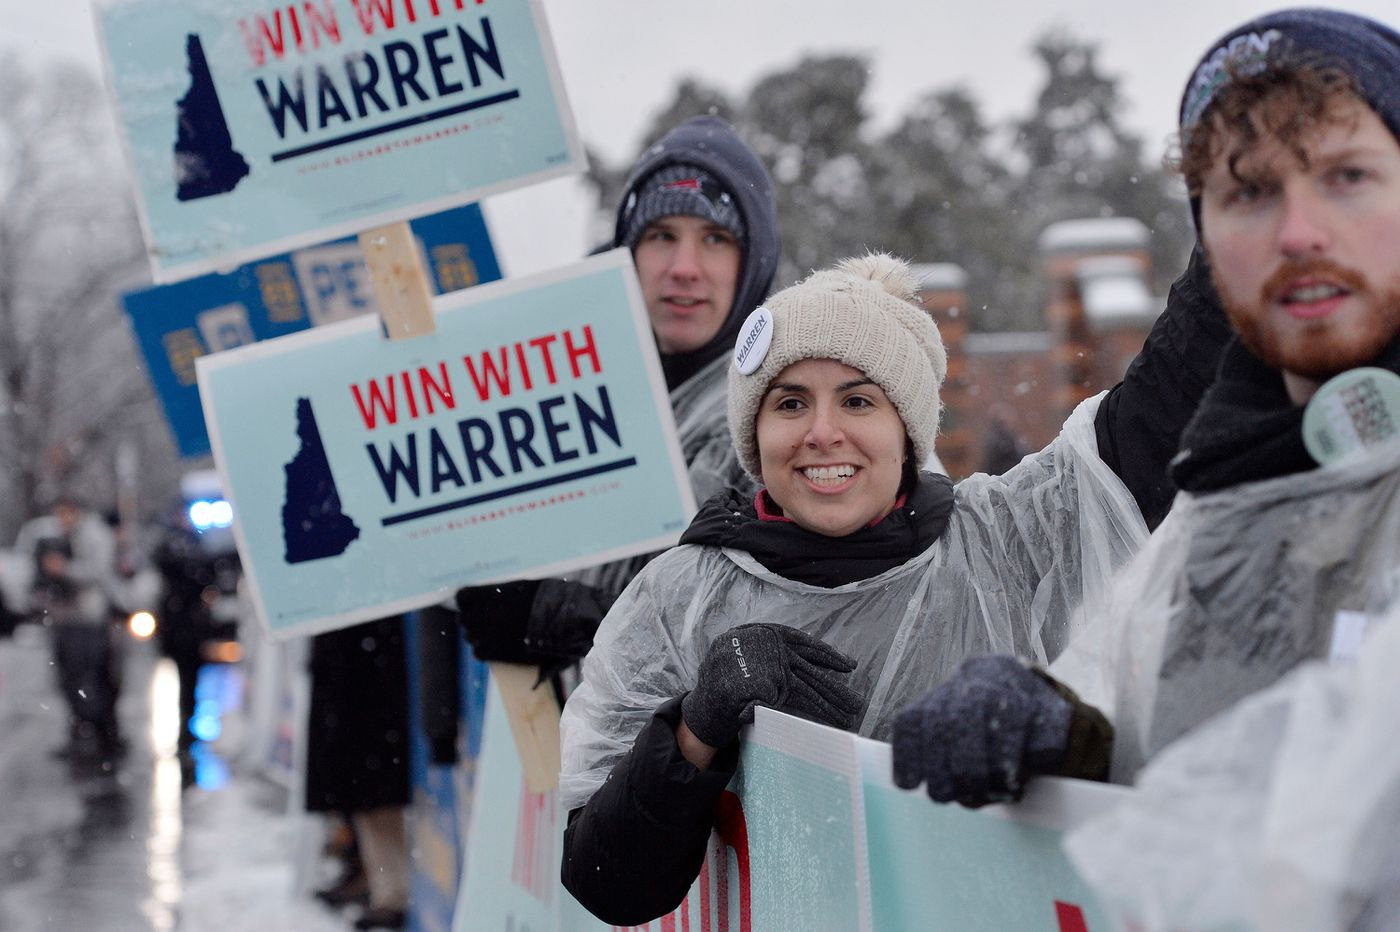 Supporters of U.S. Presidential candidate and Massachusetts Sen. Elizabeth Warren cheer and rally outside of the Democratic Debate at St. Anselm College in Manchester, New Hampshire on Feb. 7, 2020. (Joseph Prezioso/AFP/Getty Images/TNS)